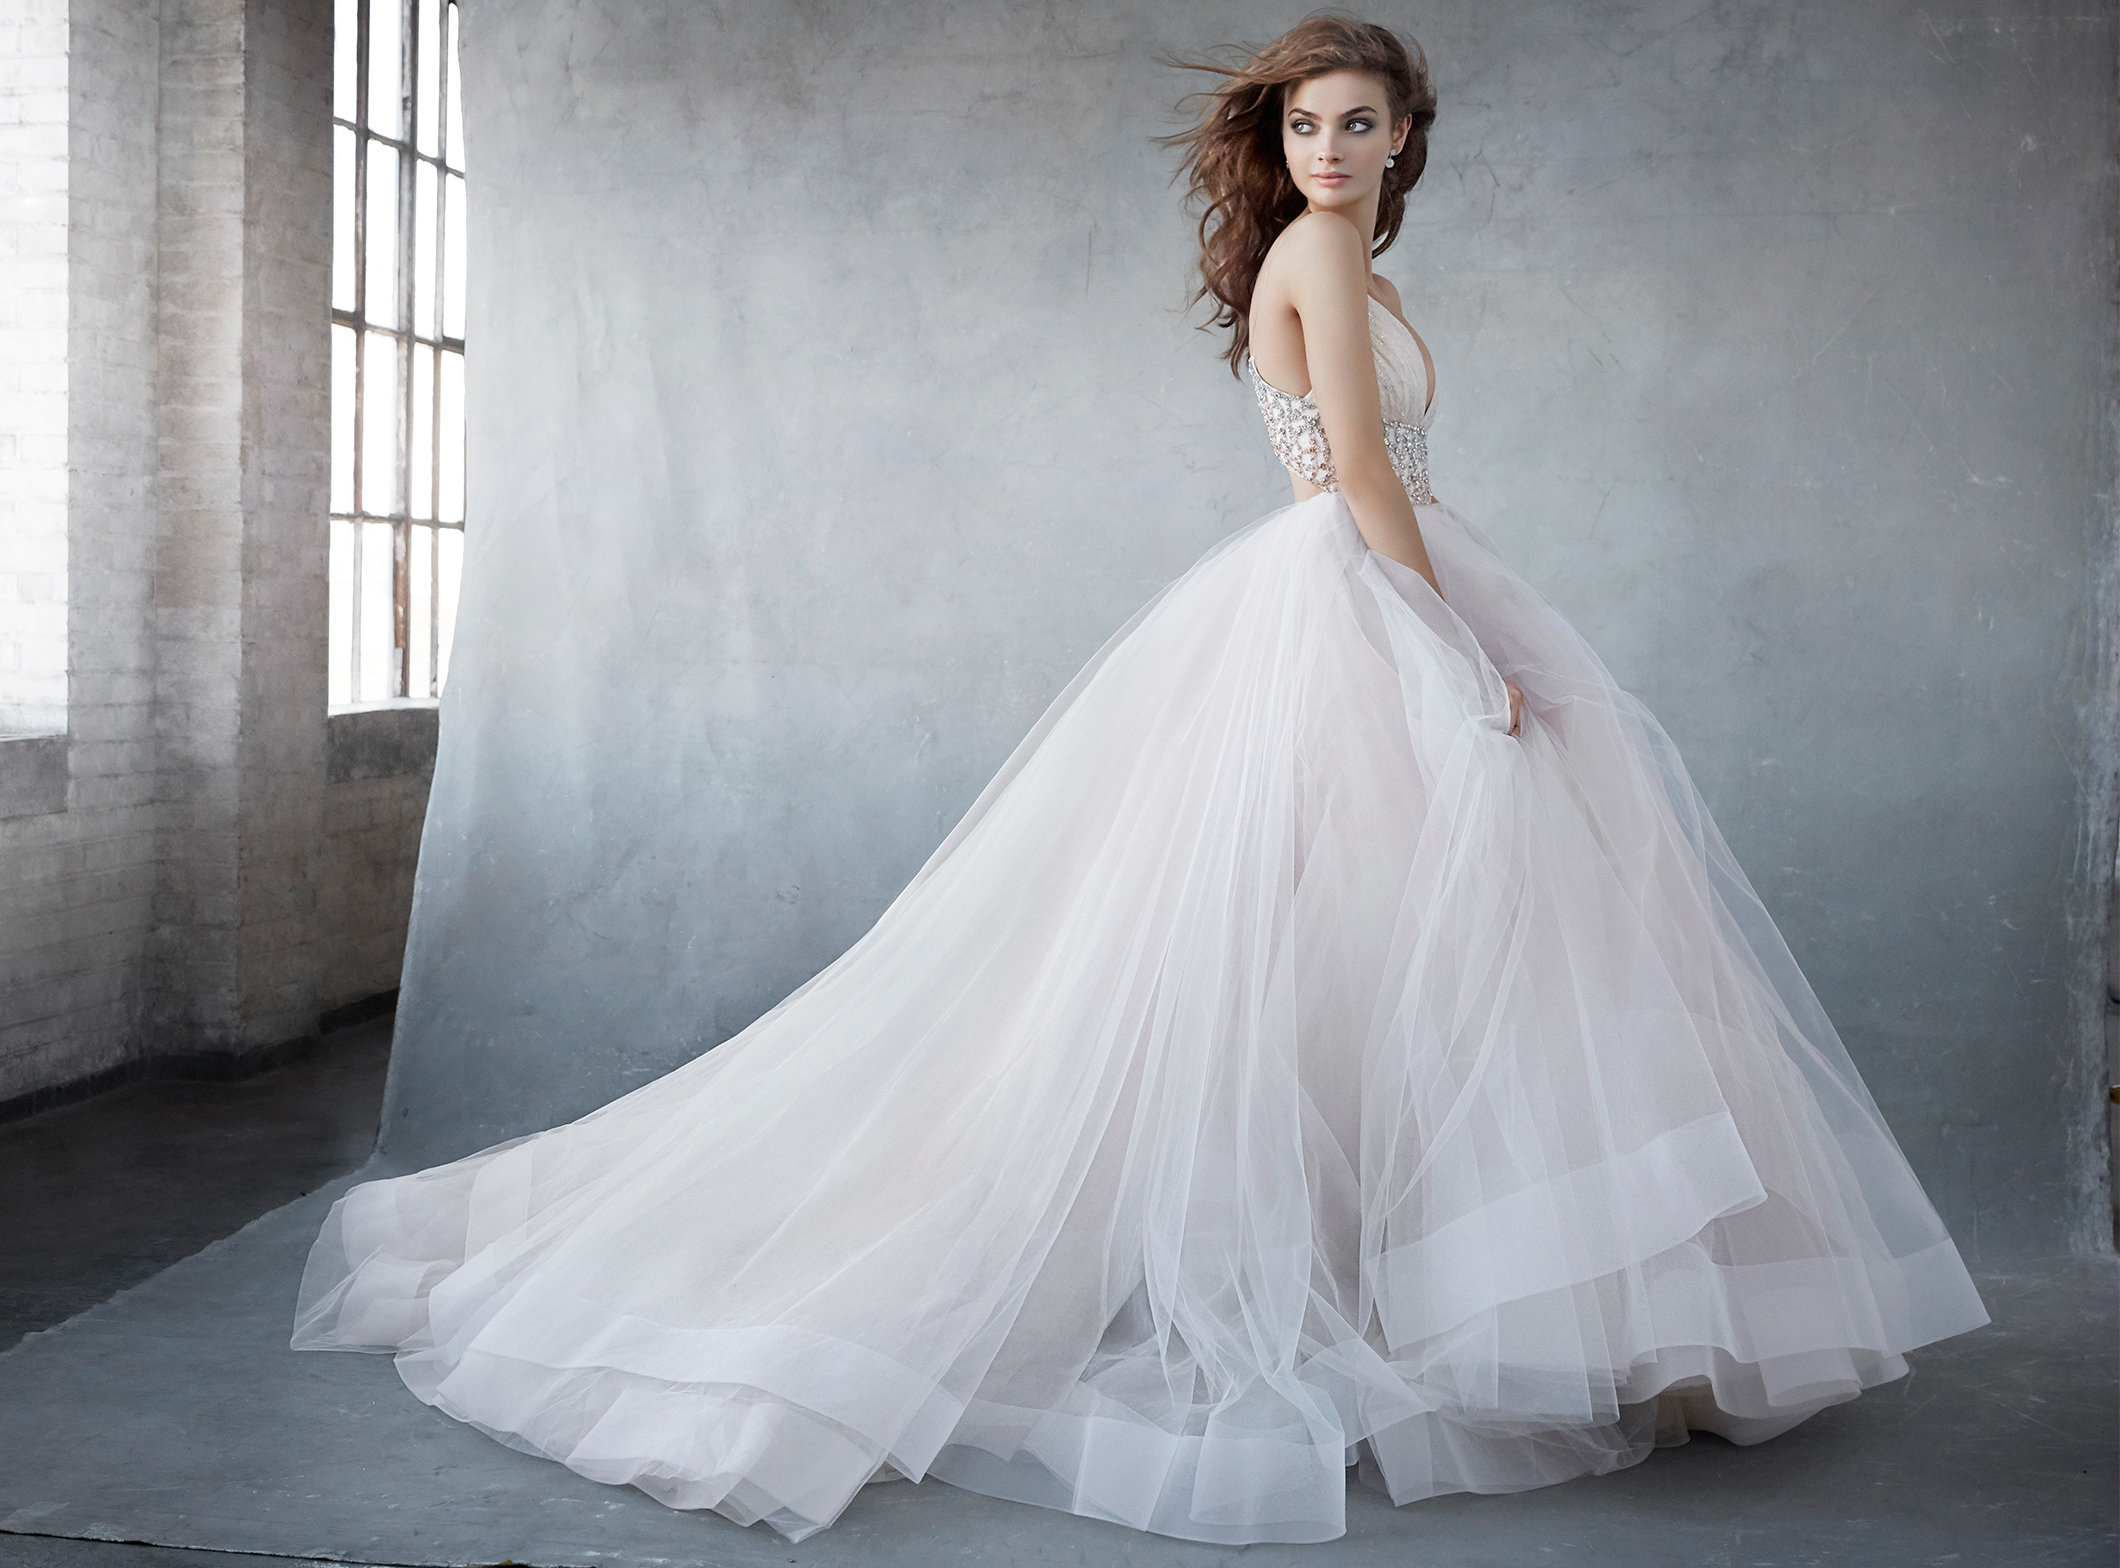 Bridal Gowns and Wedding Dresses by JLM Couture Style 3600